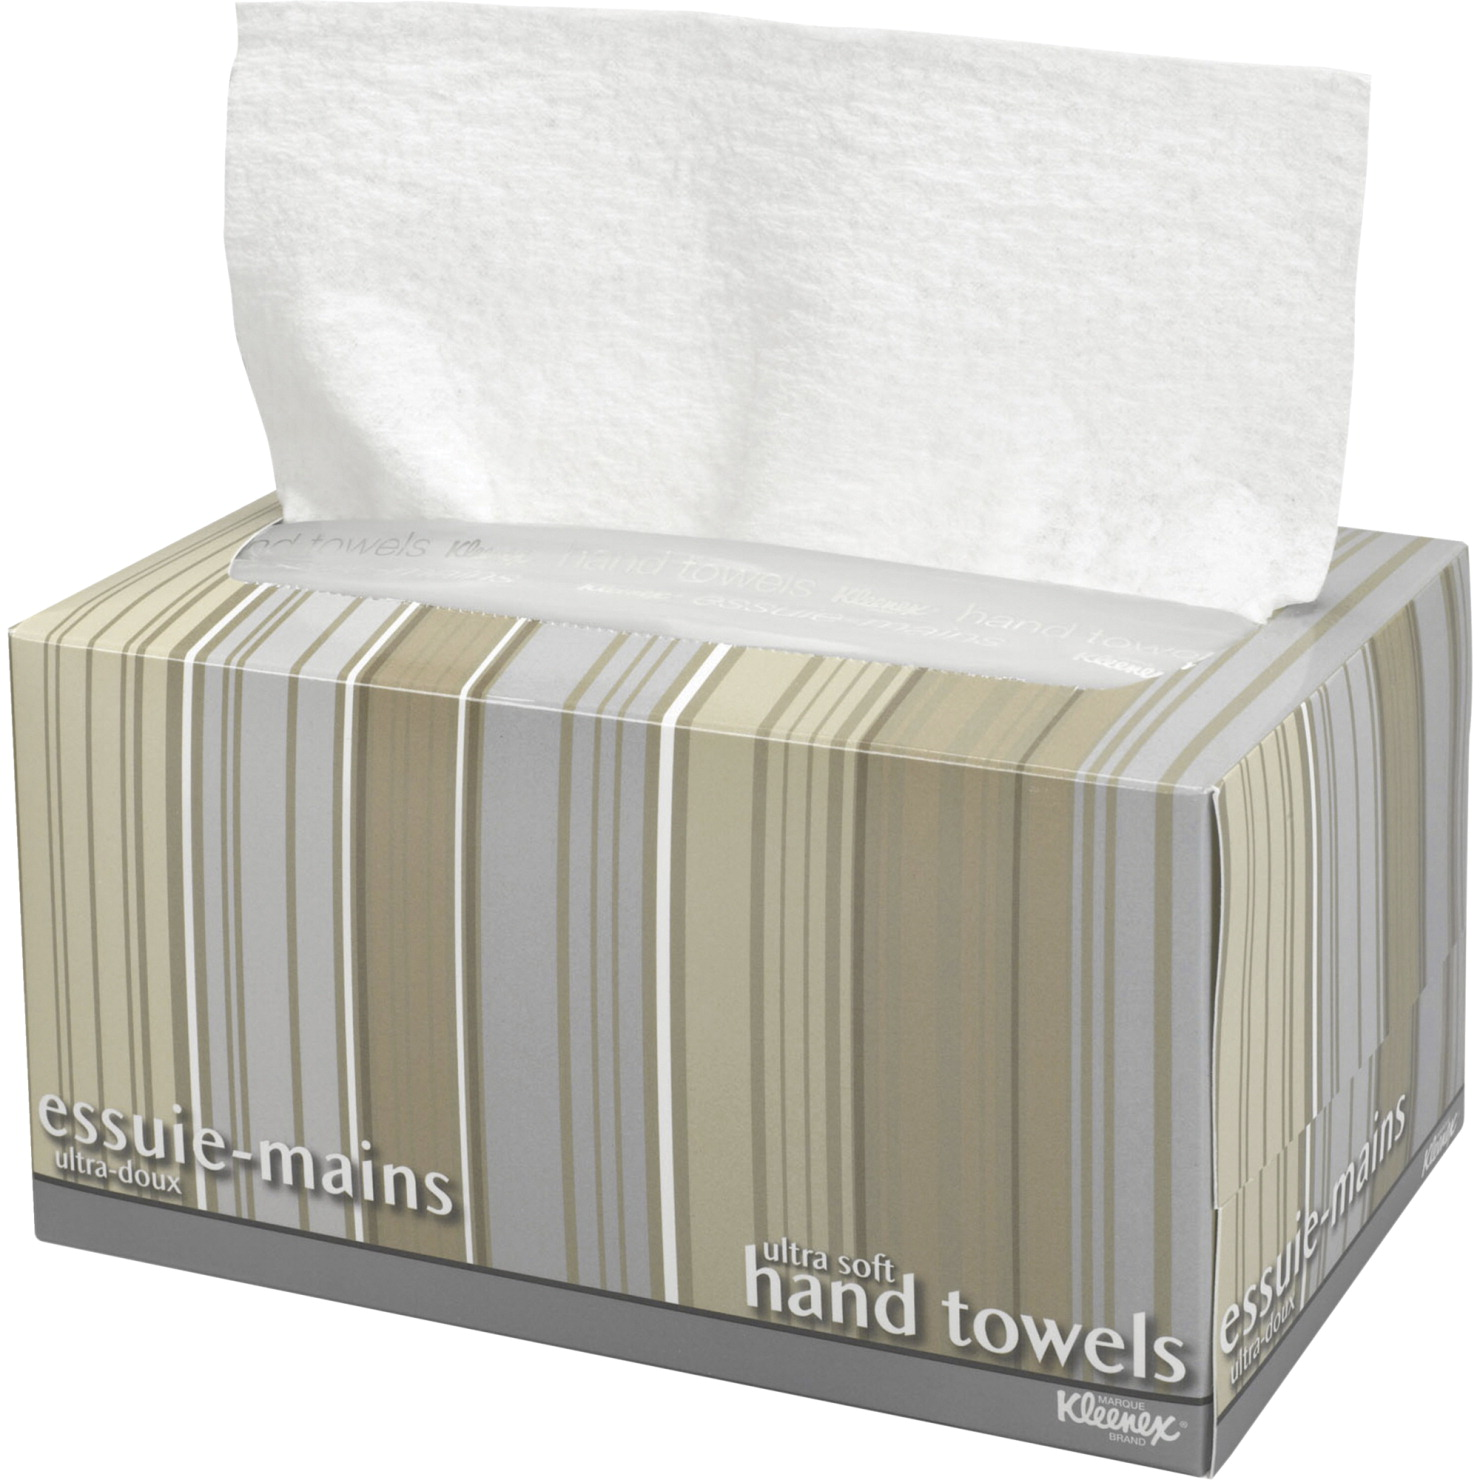 Kimberly-Clark Kleenex Ultra Soft Pop-Up Box Hand Towel, 9 X 10-1/2 in, 1-Ply, White, Pack of 70